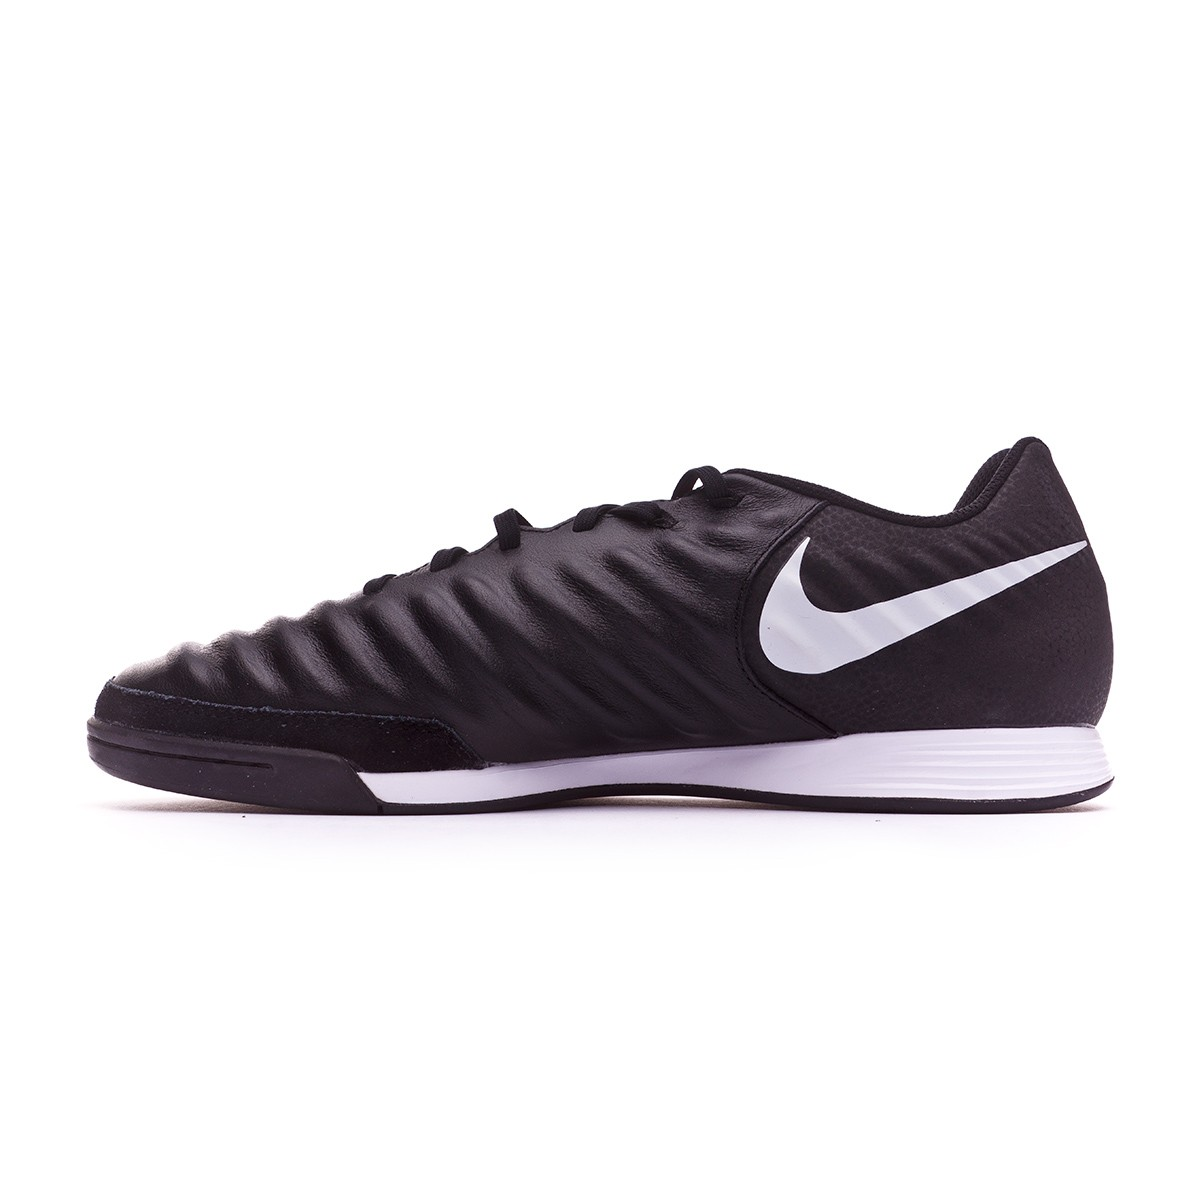 9eacc9fef667d Futsal Boot Nike Tiempo LegendX VII Academy IC Black-Pure platinum-Light  crimson - Football store Fútbol Emotion